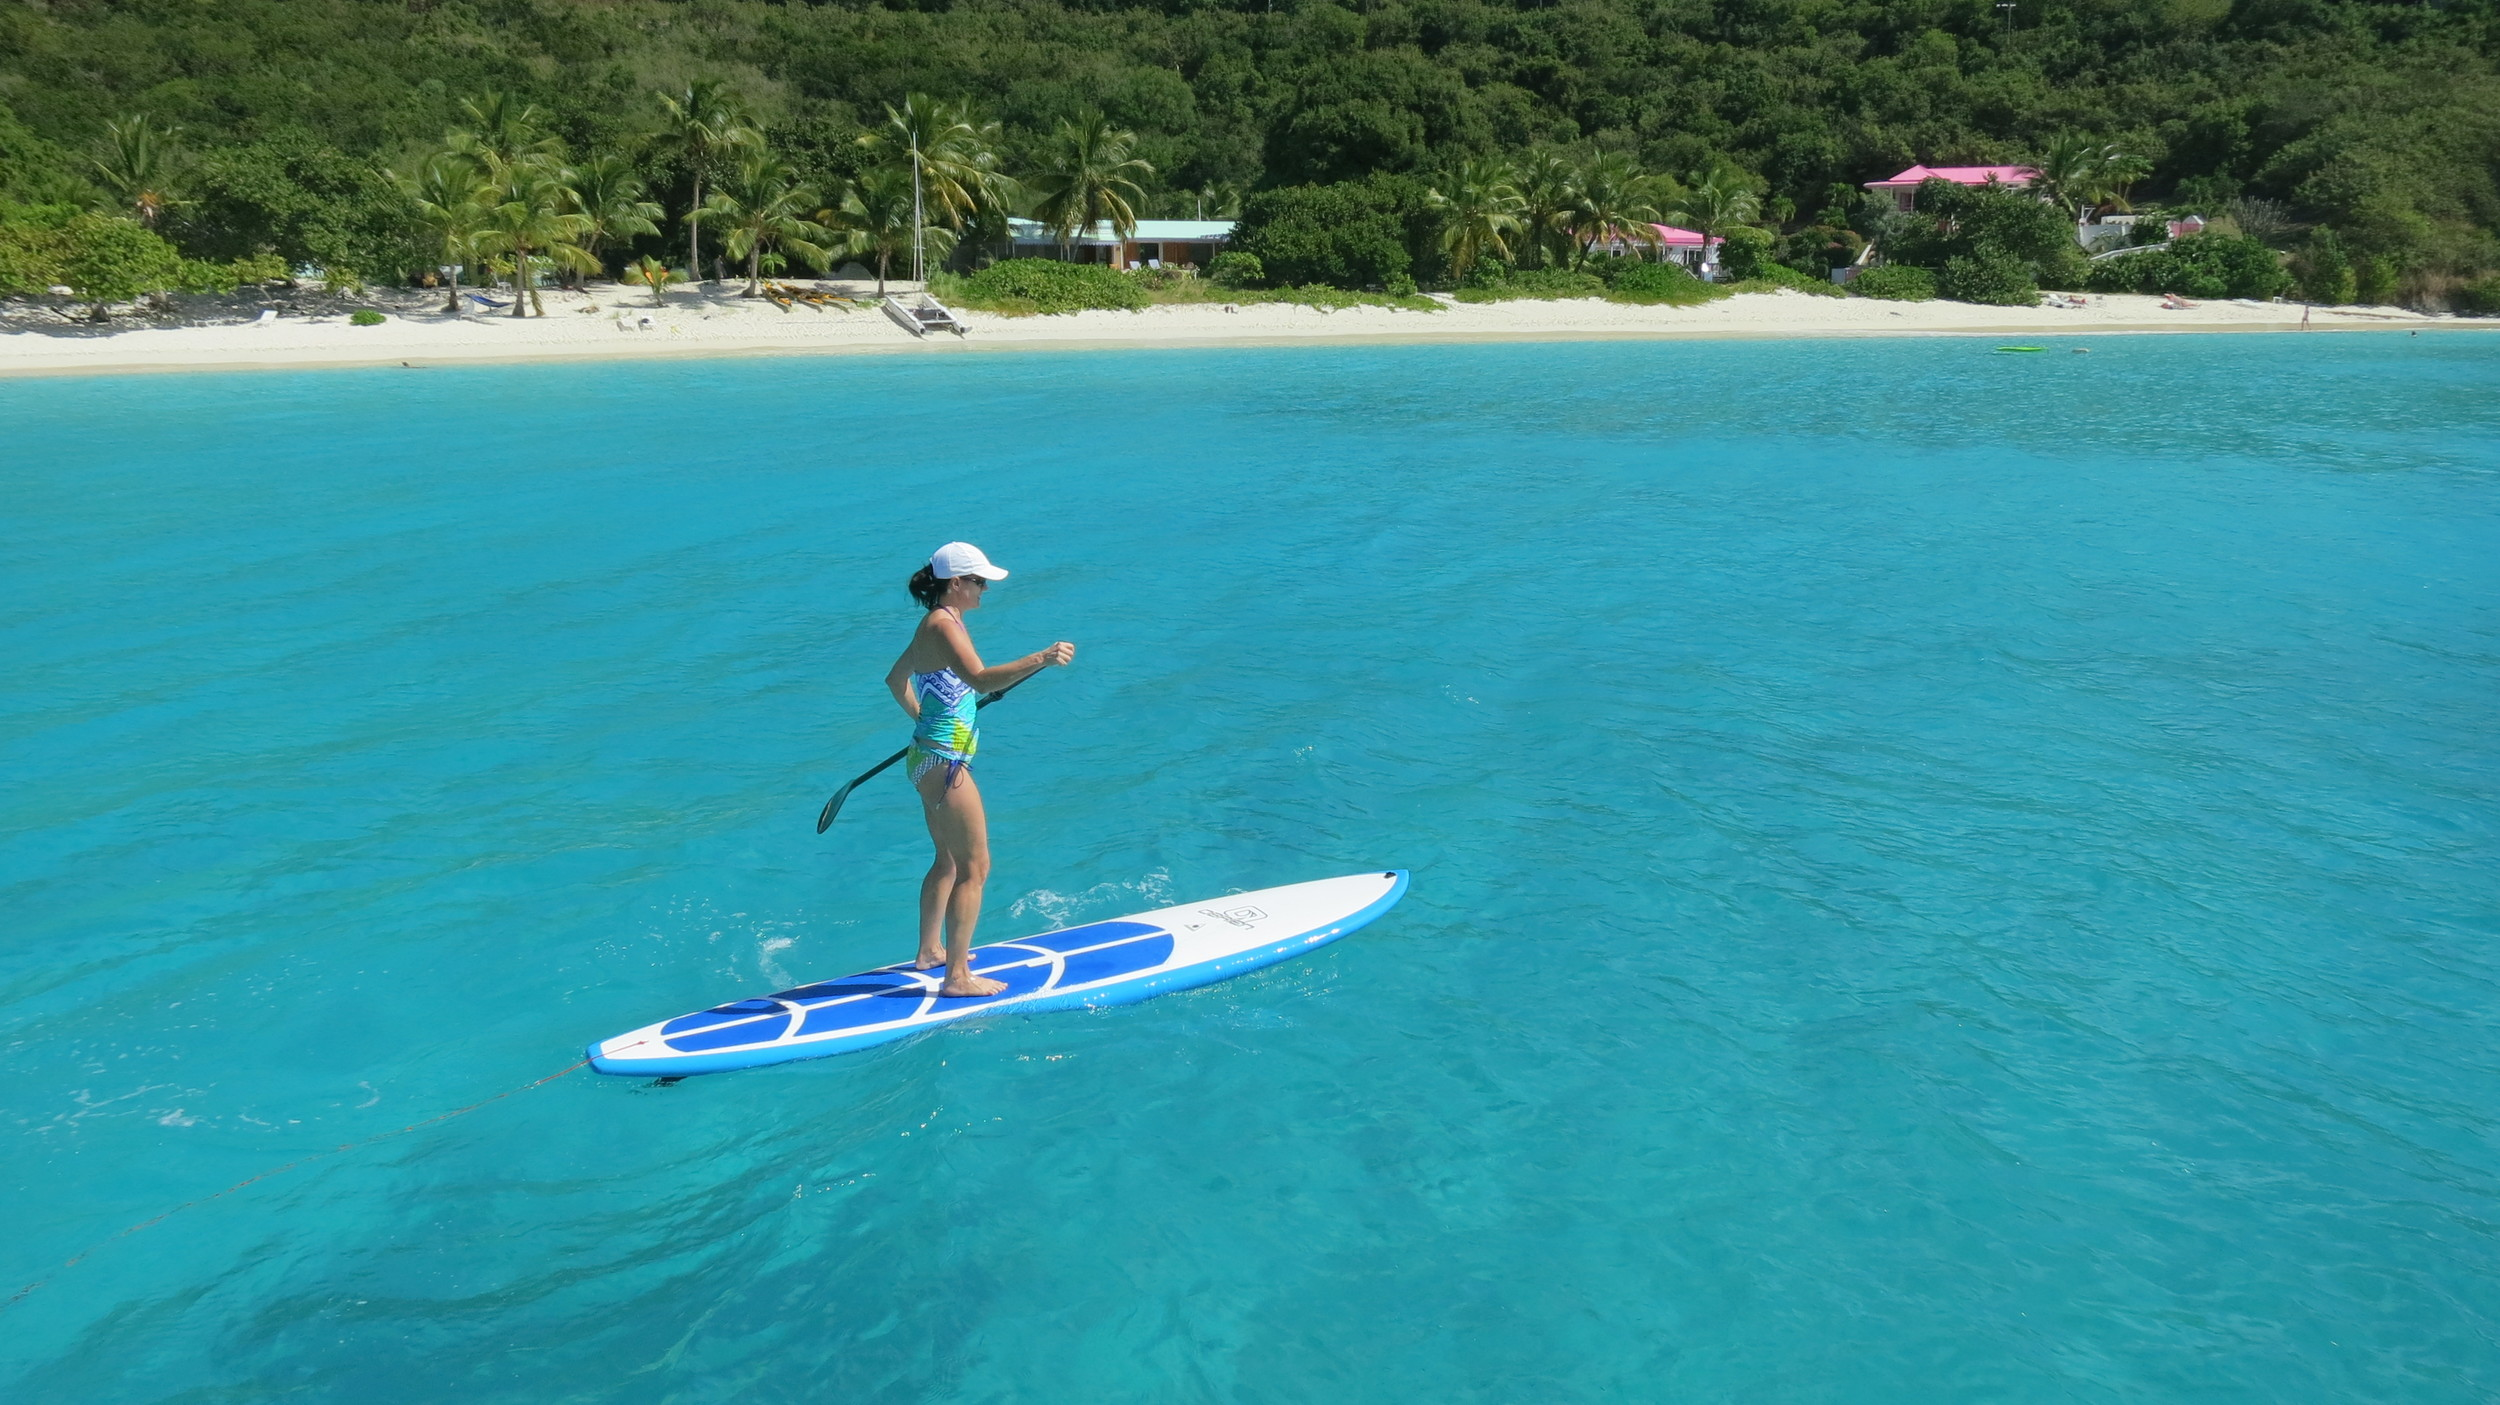 Cruise around on the Stand Up Paddle Board (SUP)